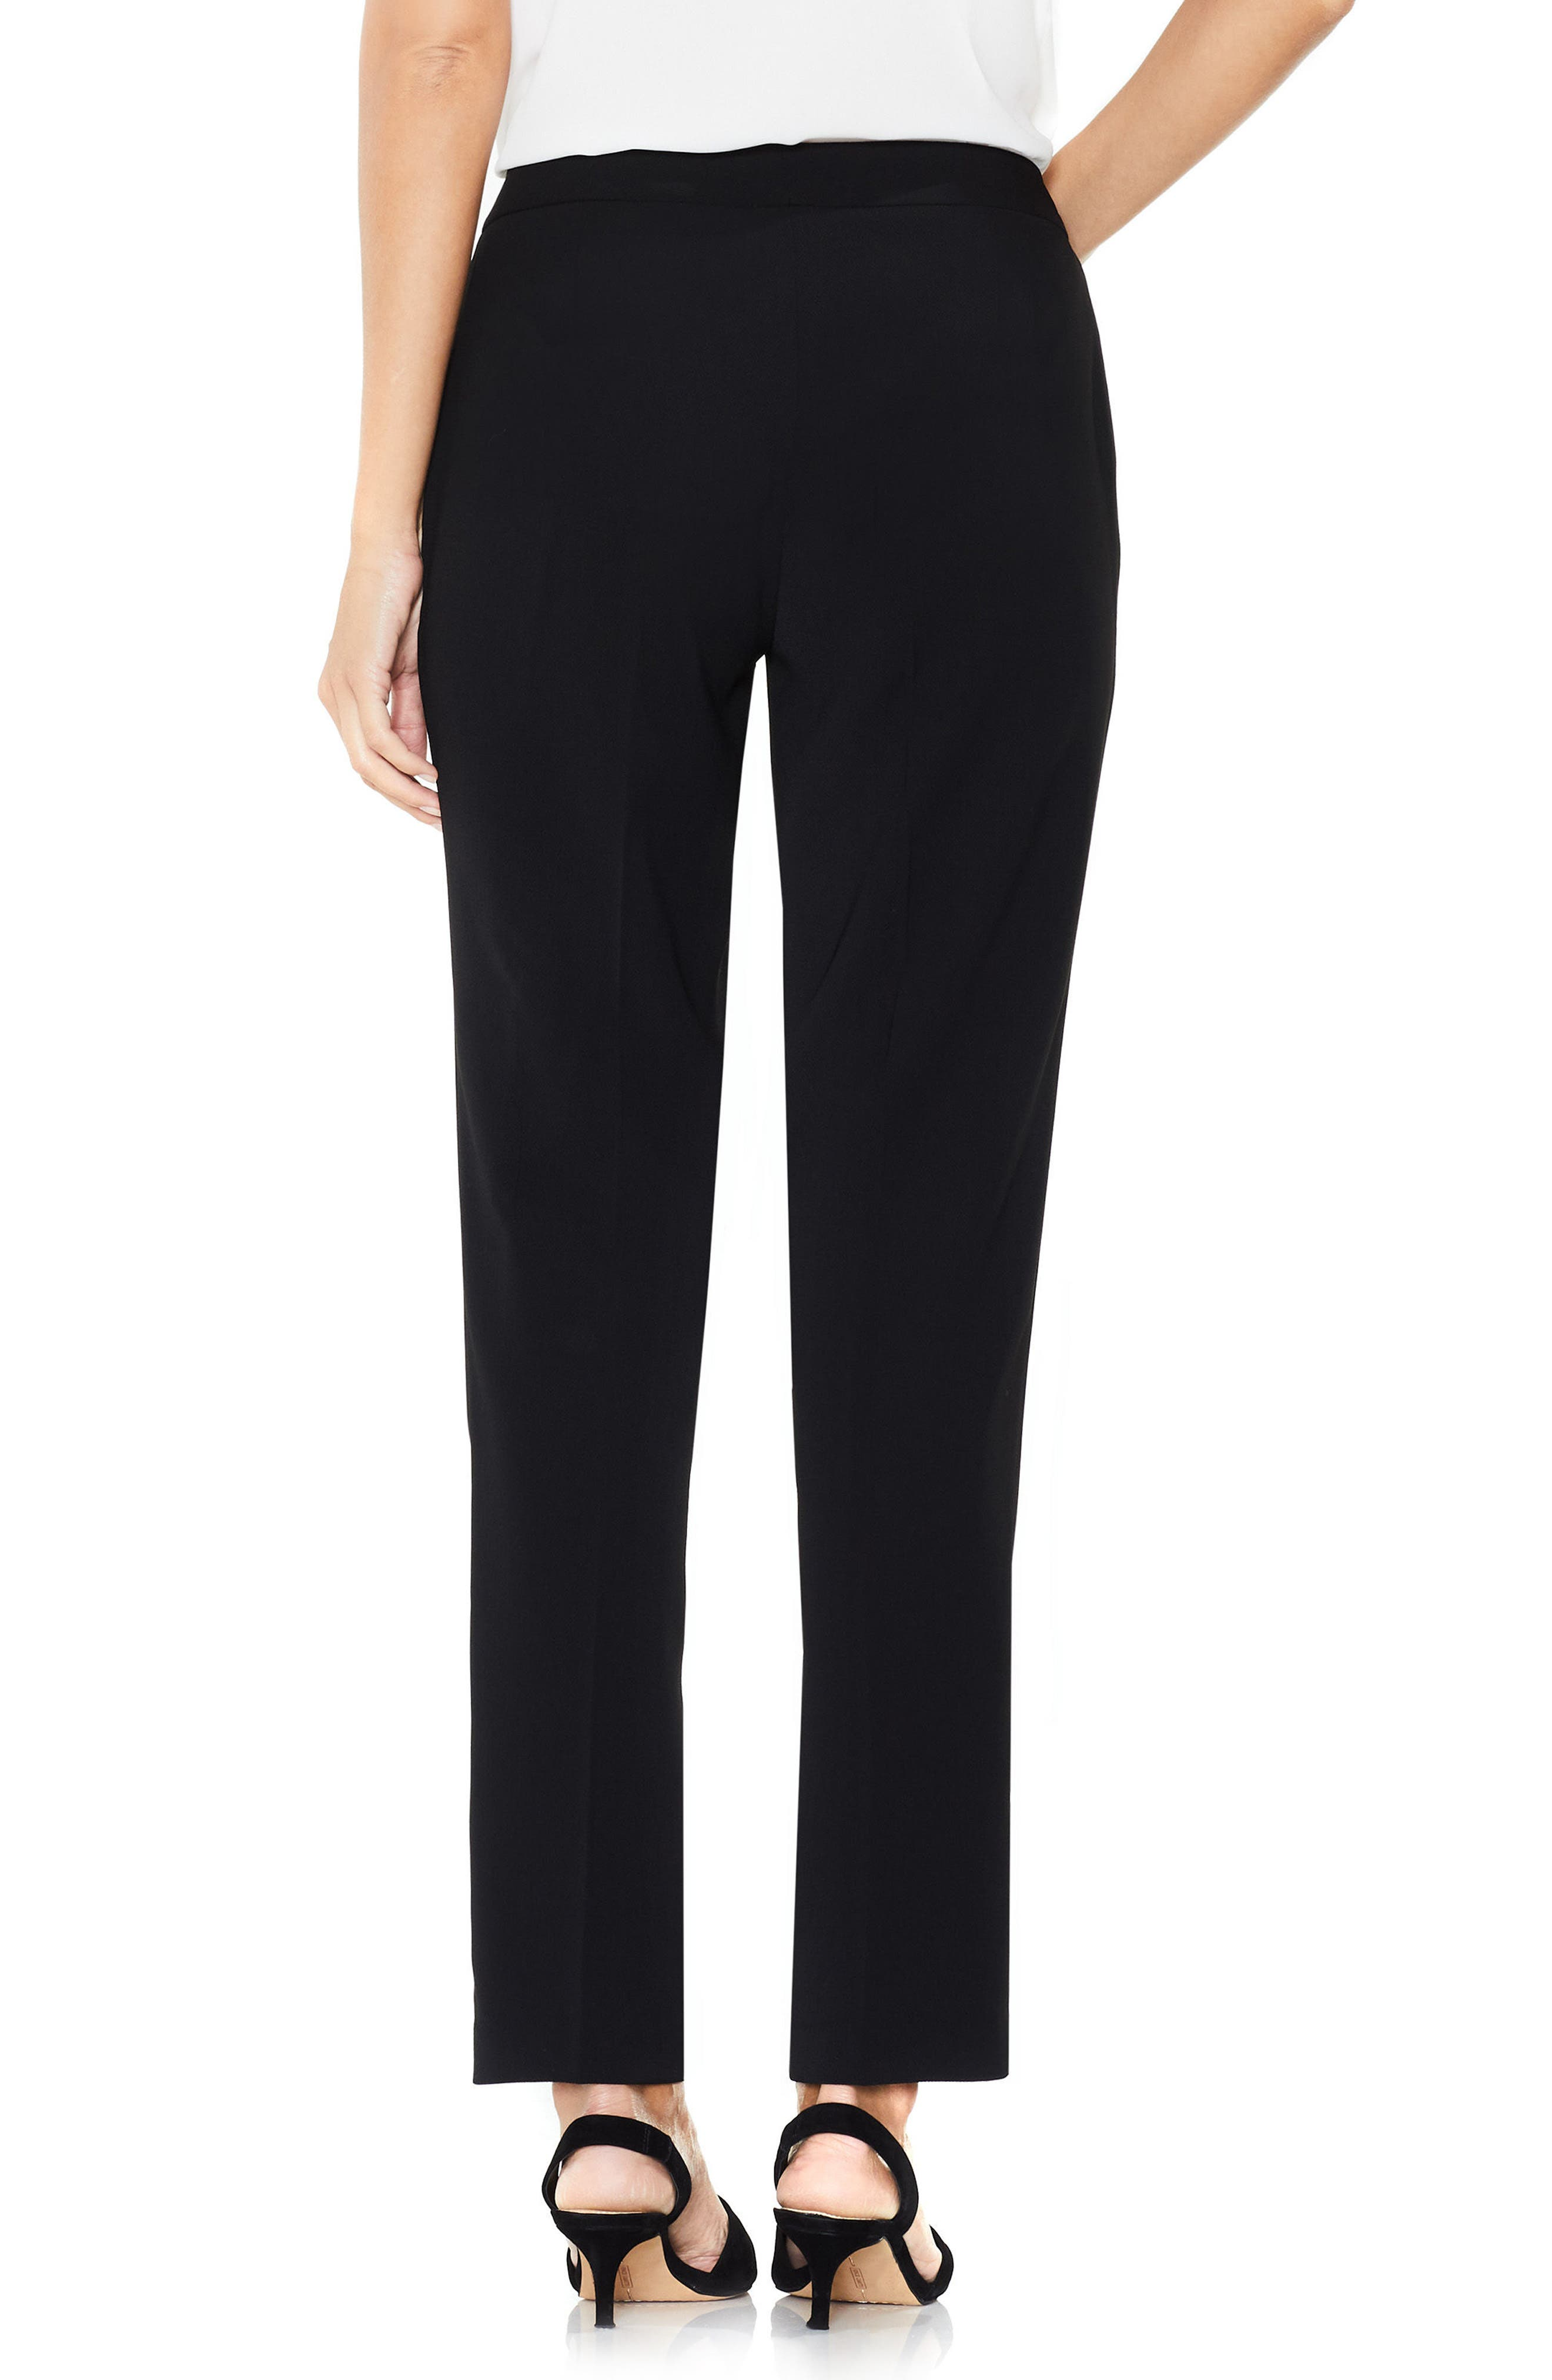 VINCE CAMUTO Textured Skinny Ankle Pants, Rich Black